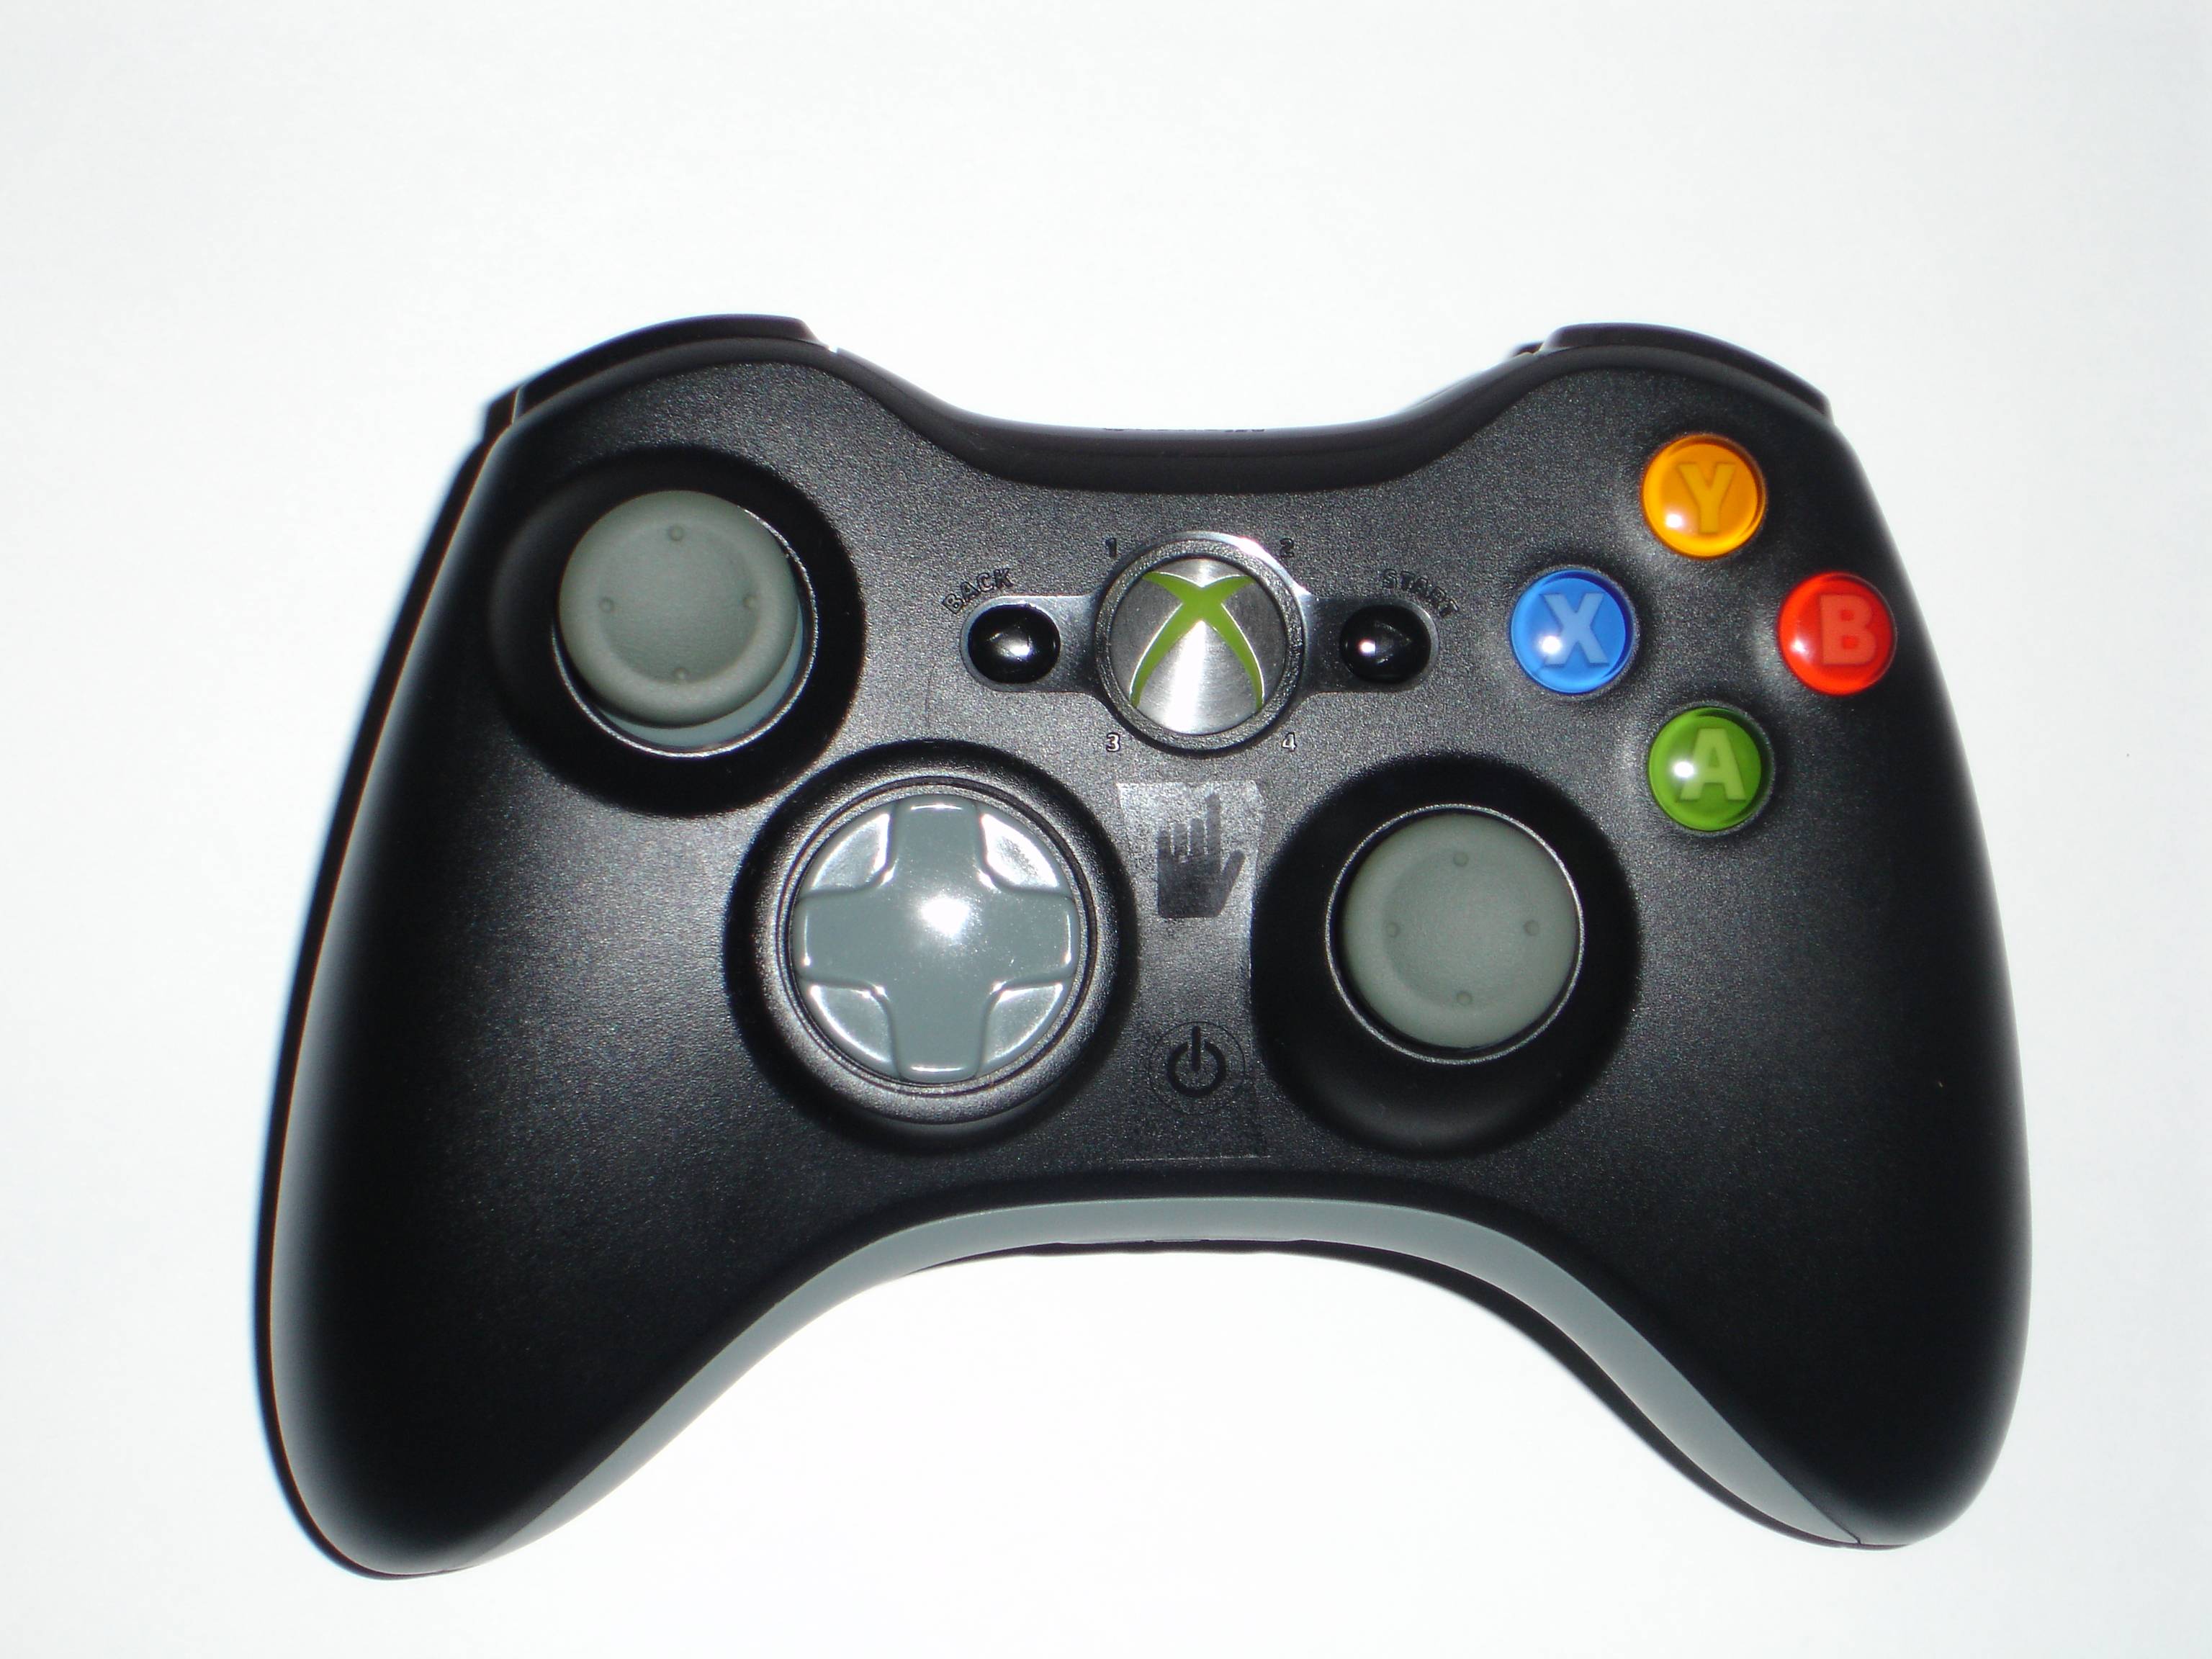 XBOX 360 gamepad controller now usable within the game Fictorum